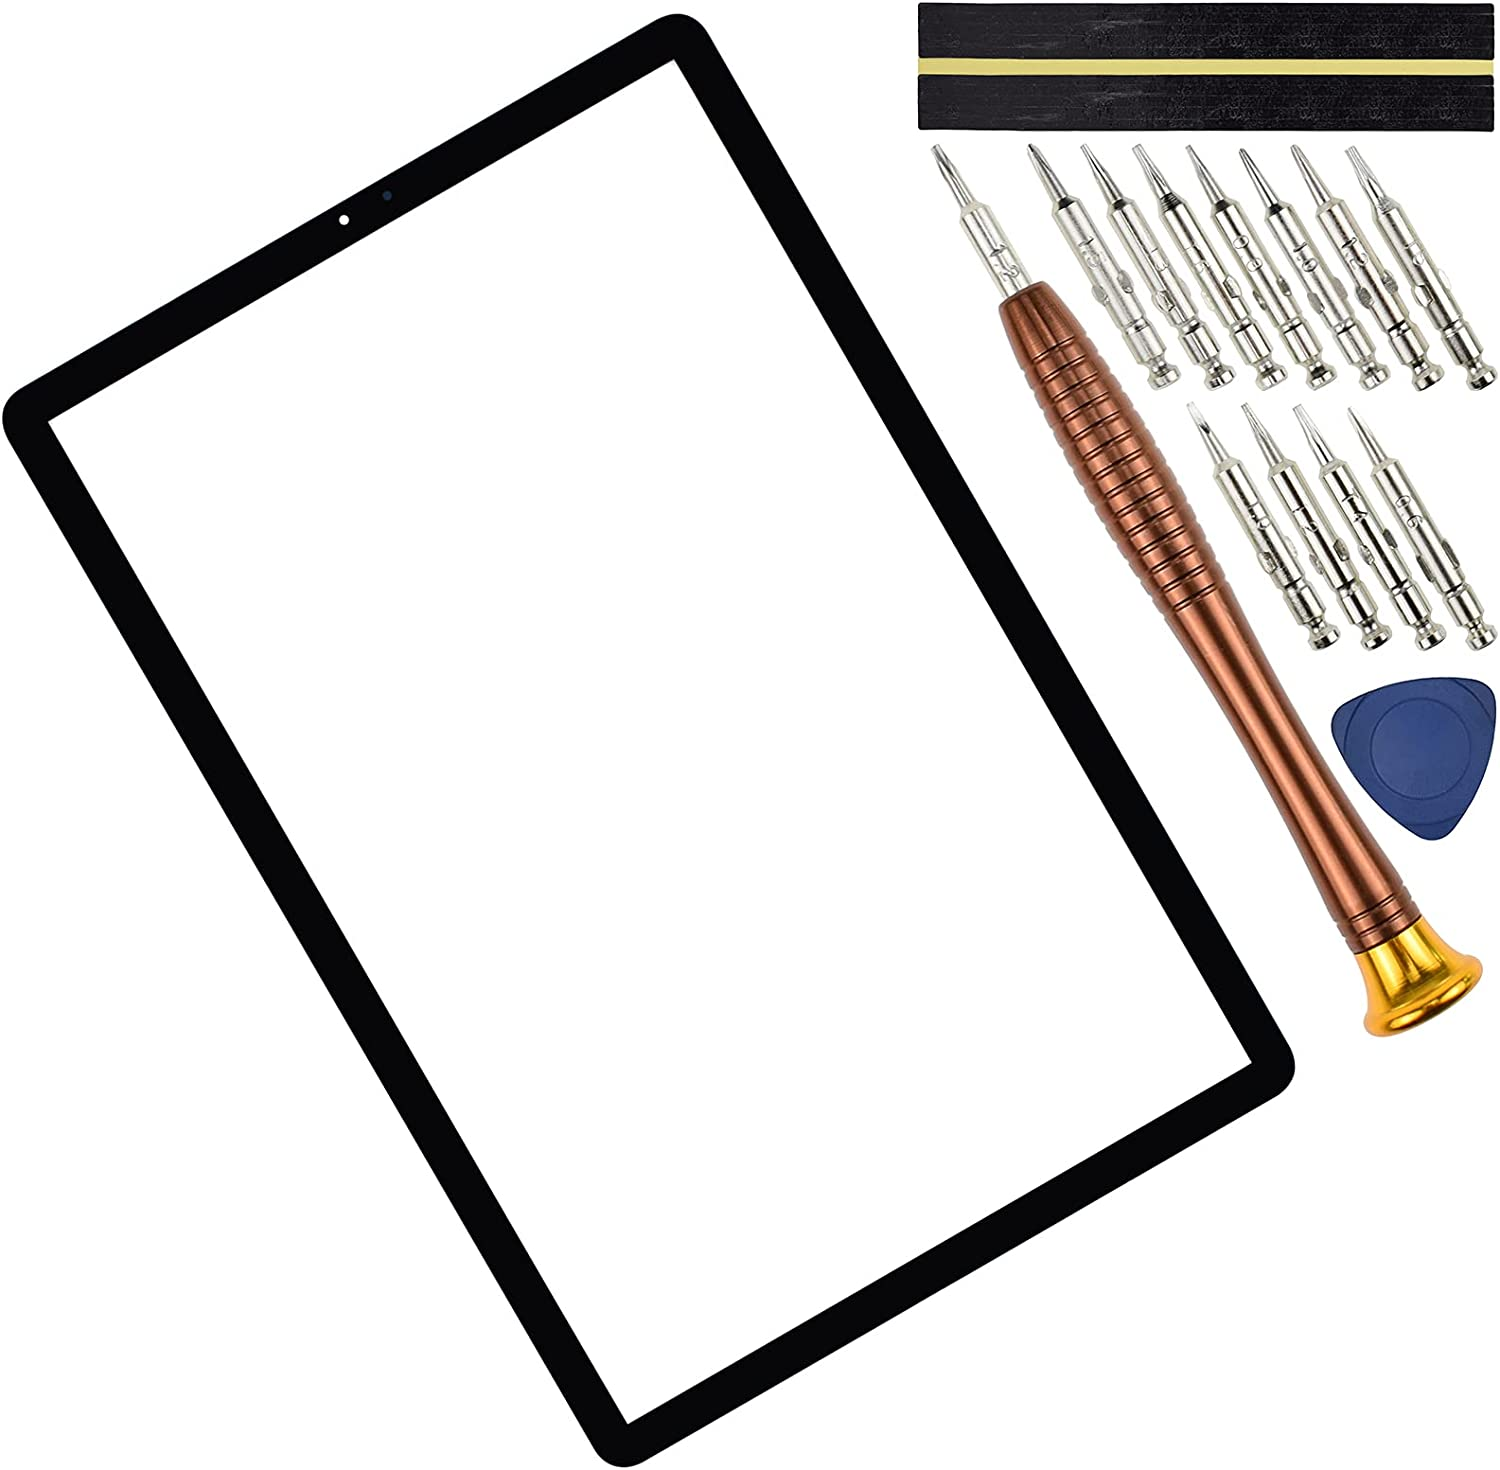 Popular products SM-T720 Glass Screen Replacement Cheap mail order specialty store for S5e Oute Samsung Tab Galaxy